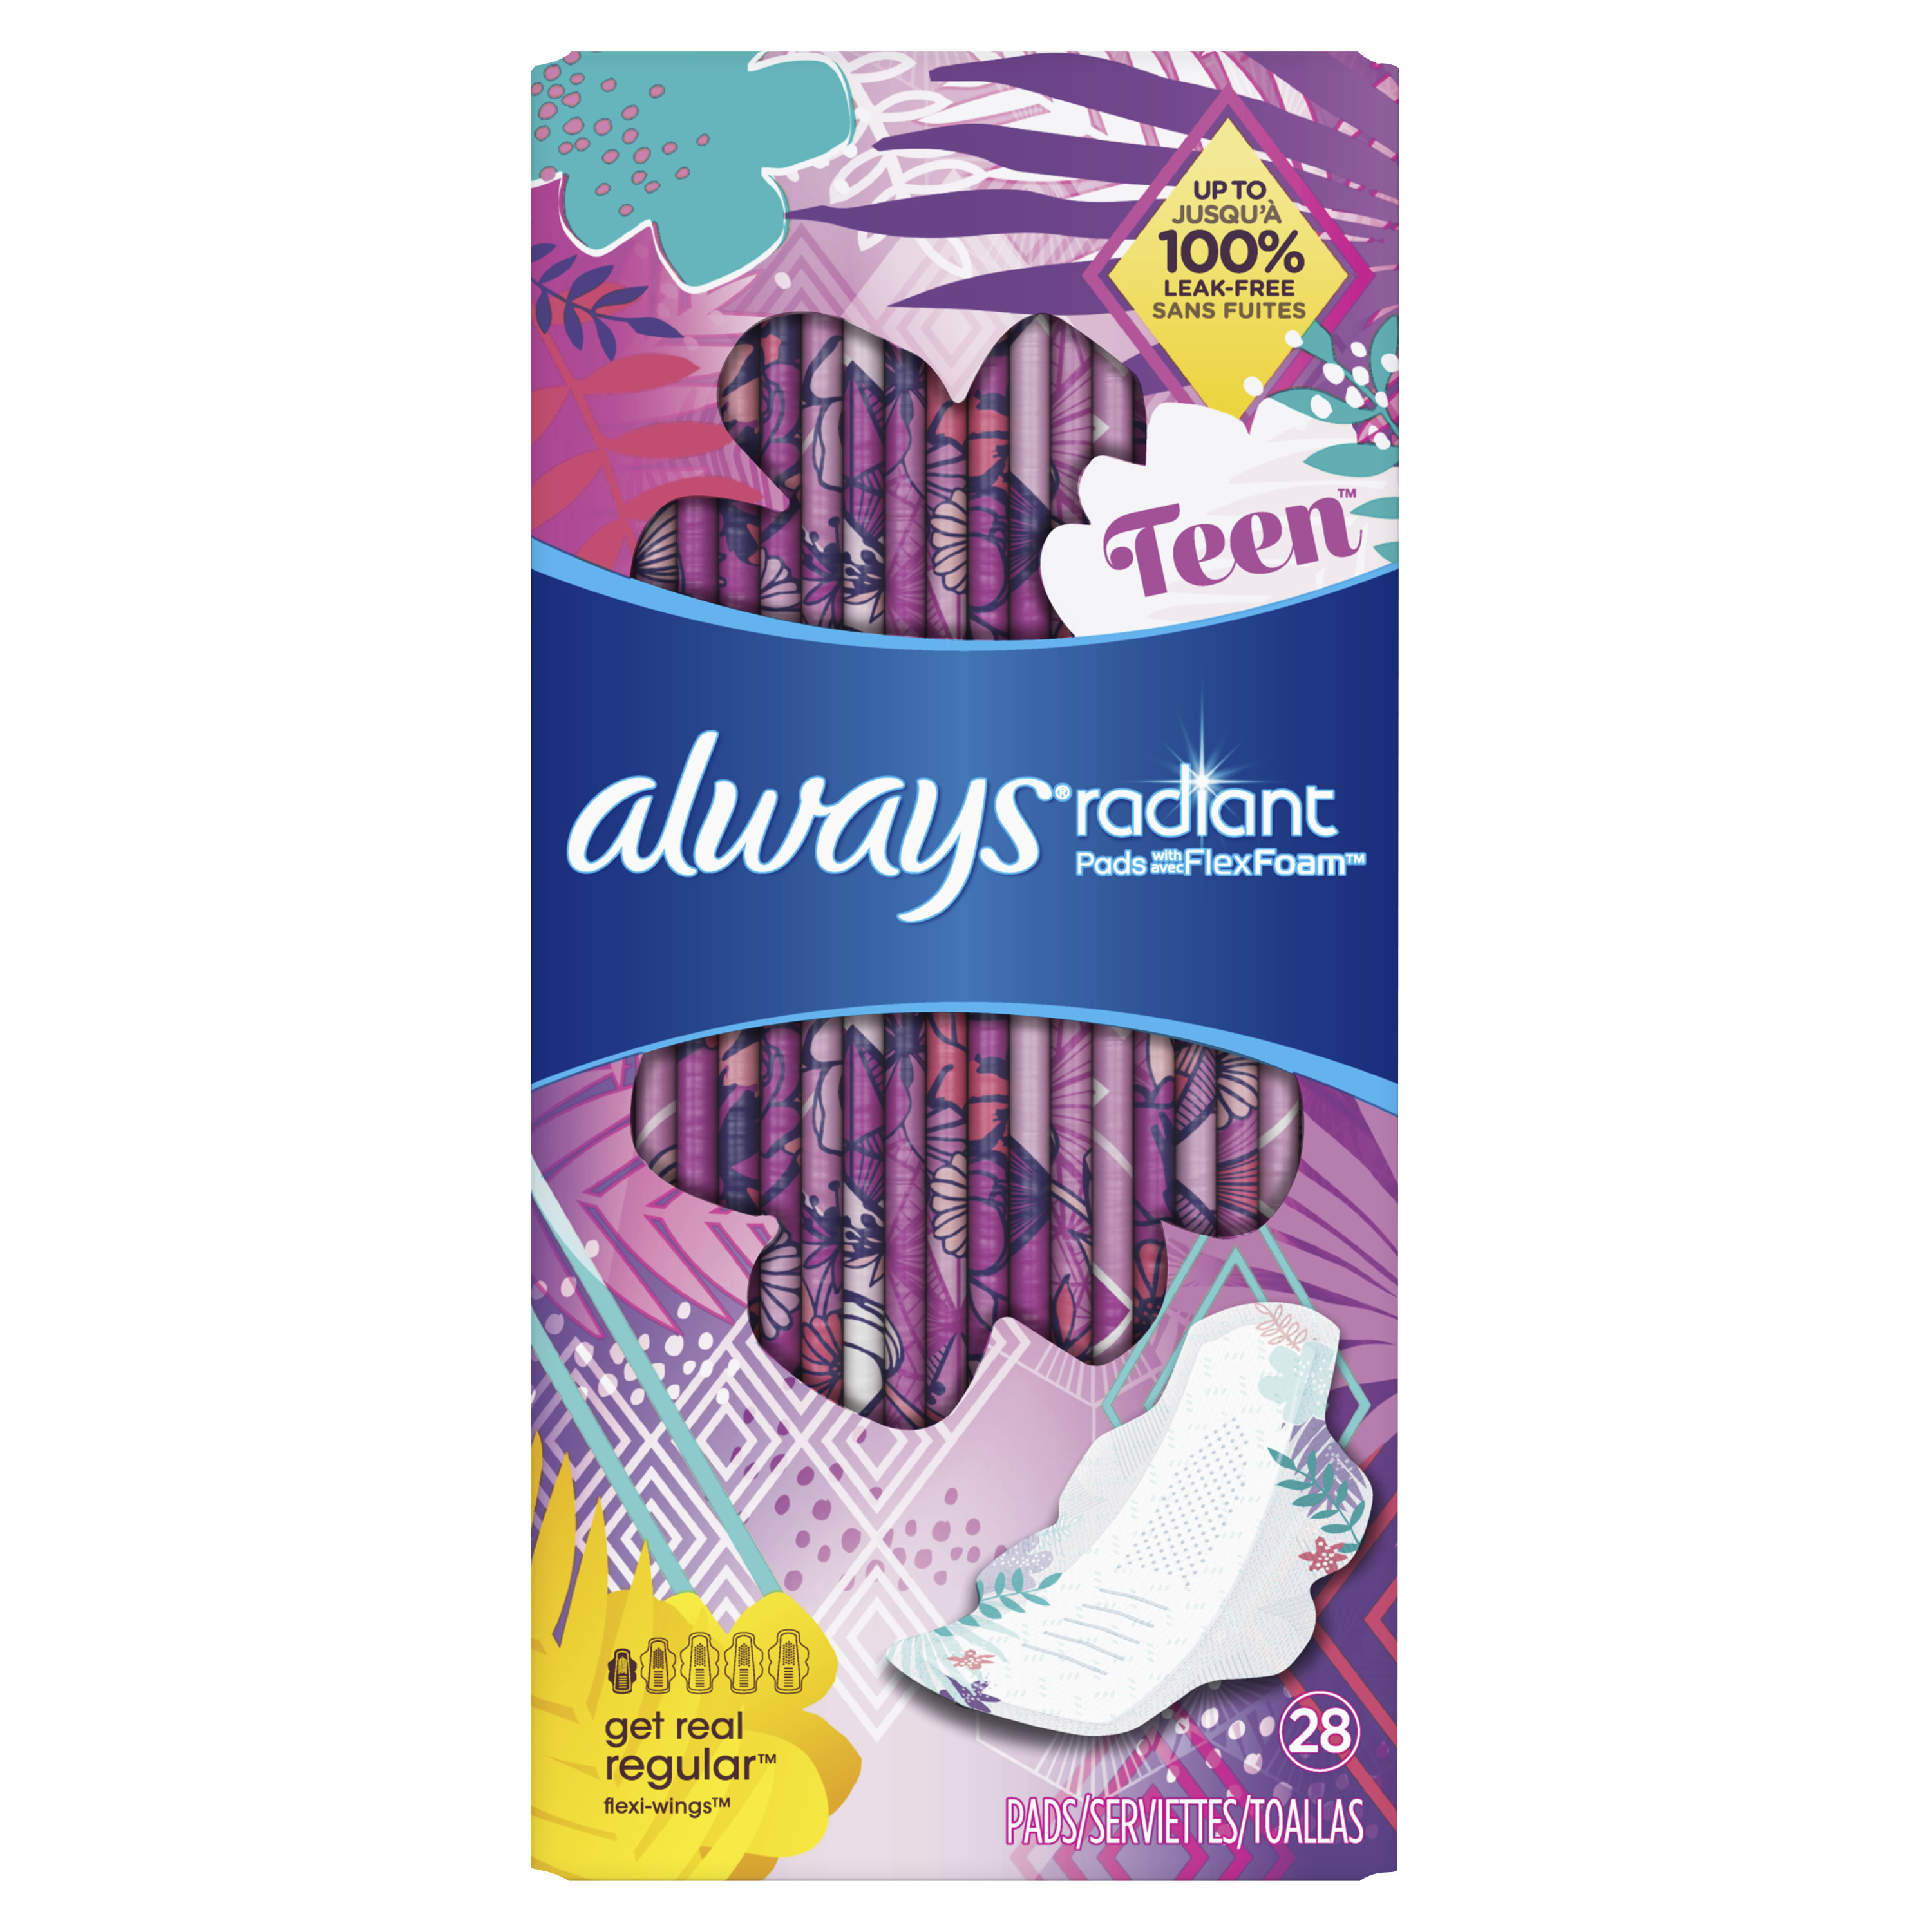 Always Radiant Teen Pads, Unscented, Get Real Regular, 28 Count